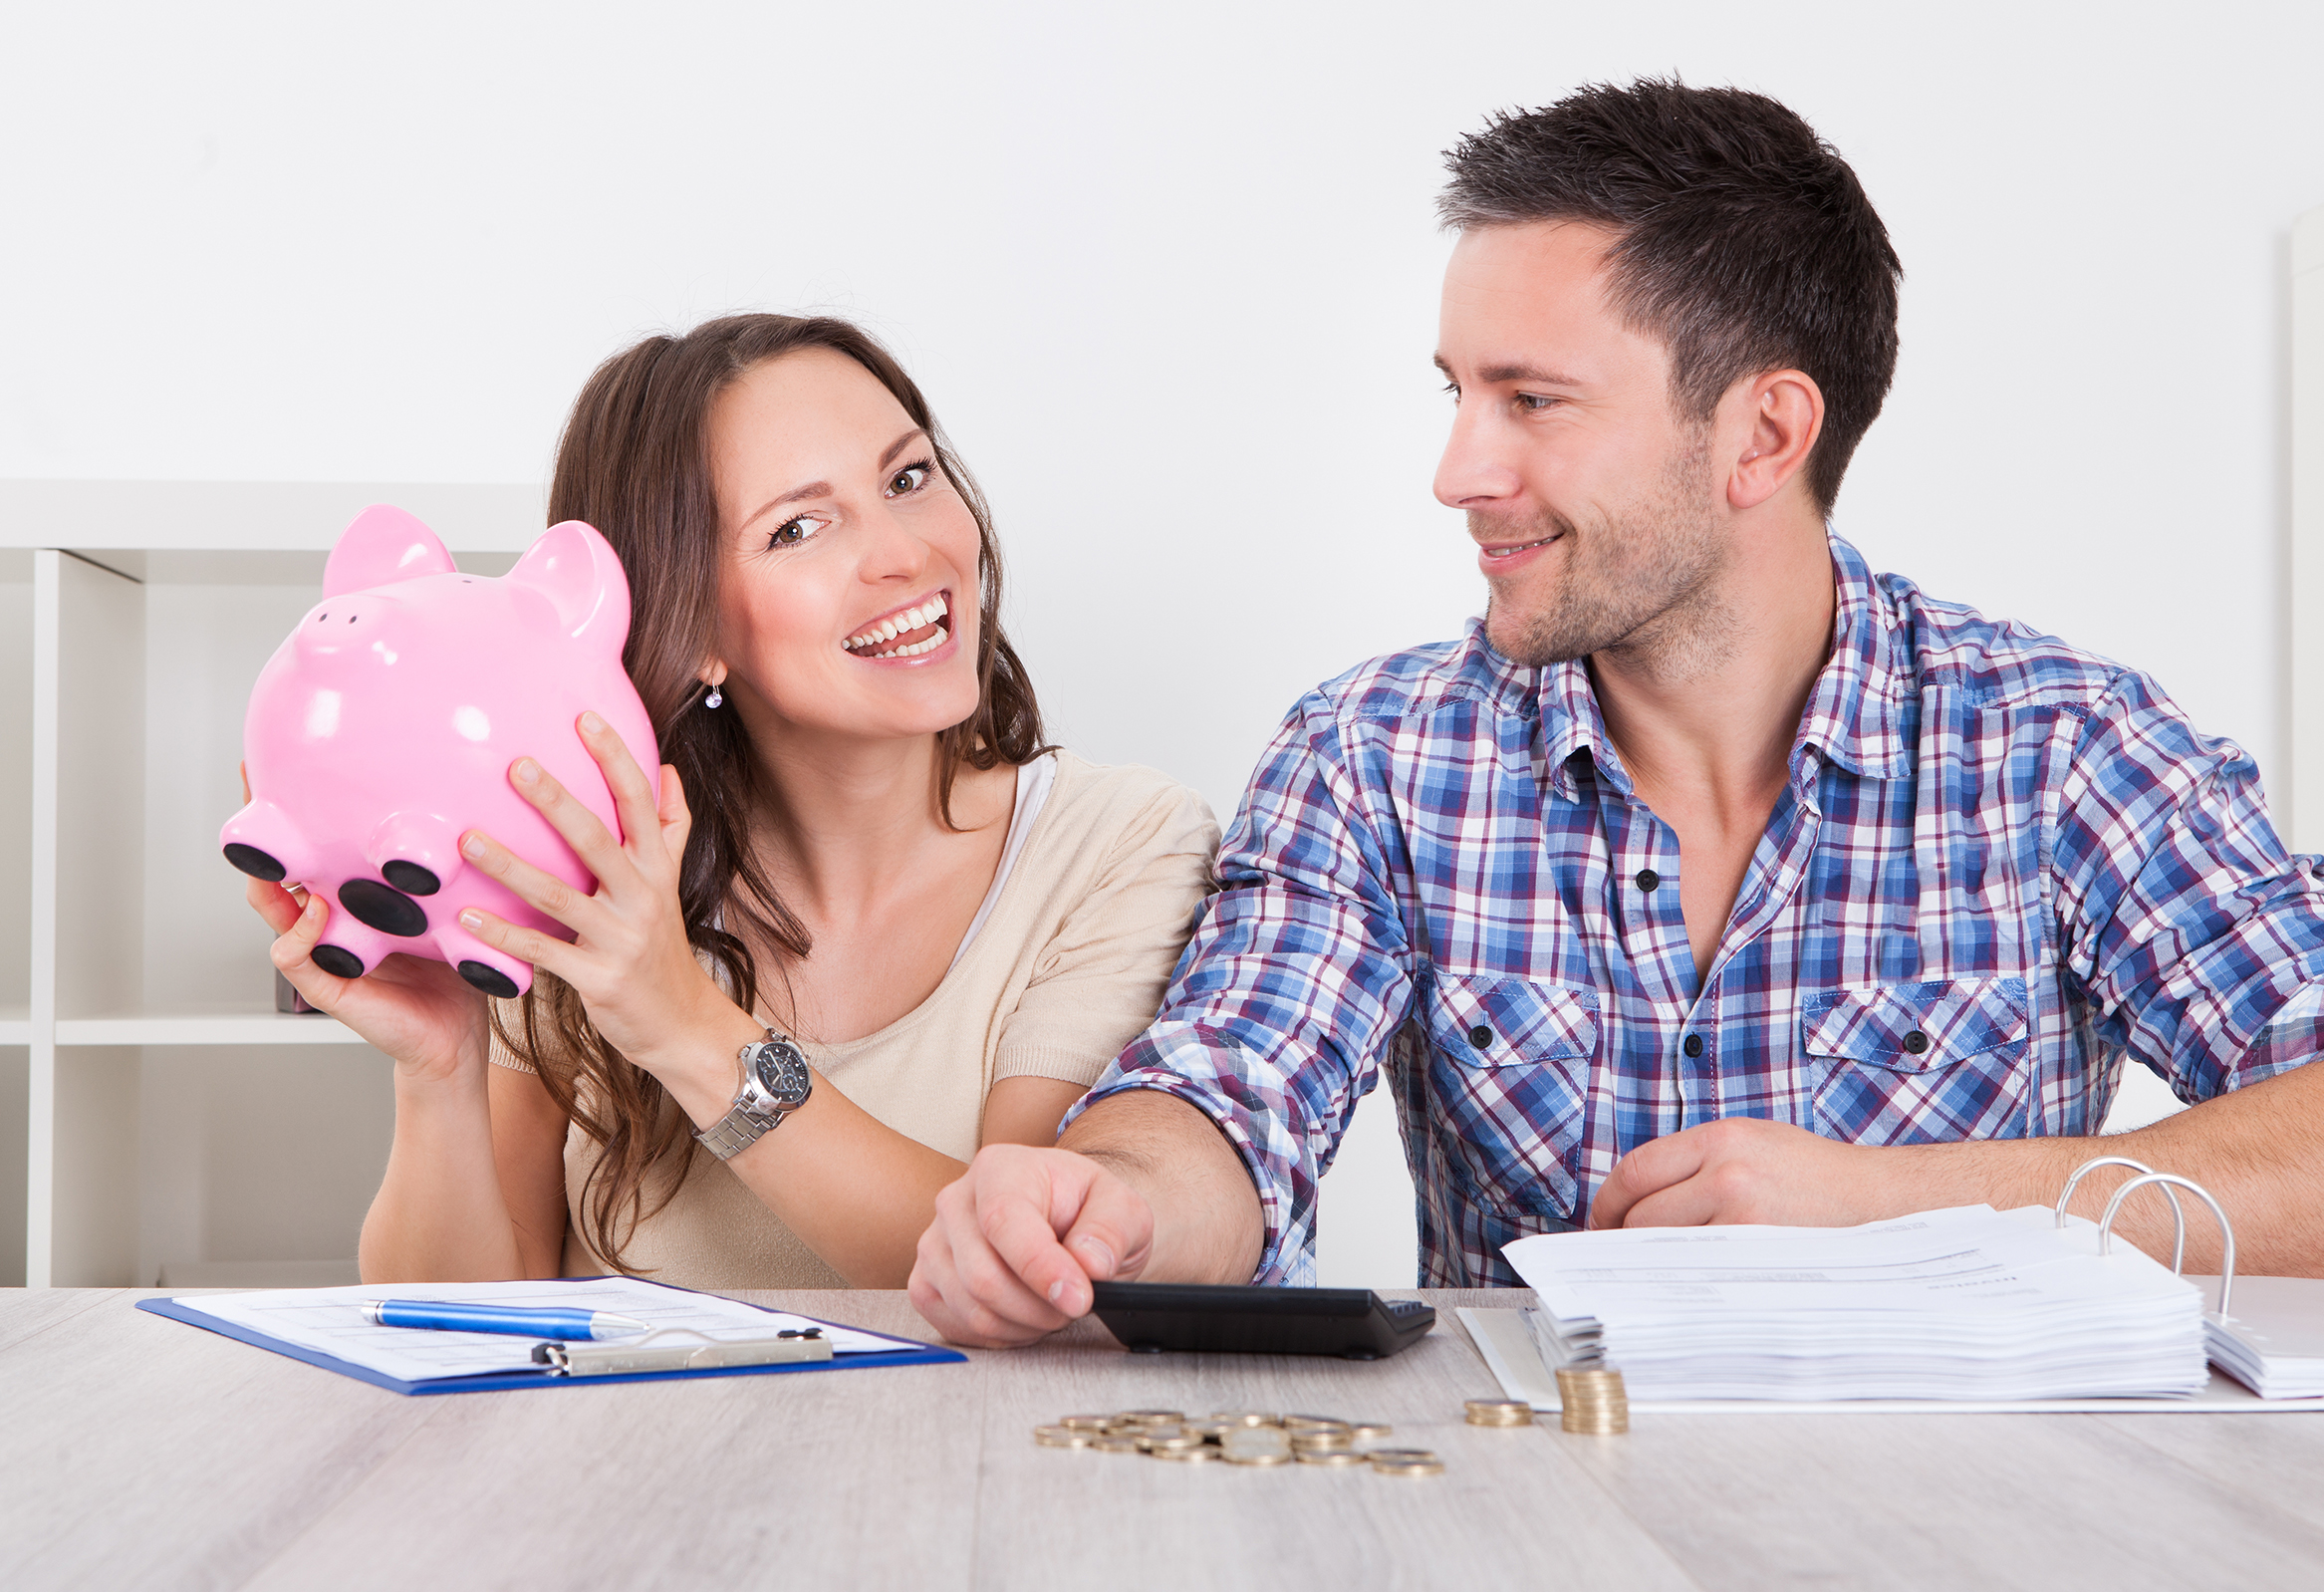 man and woman with piggy bank